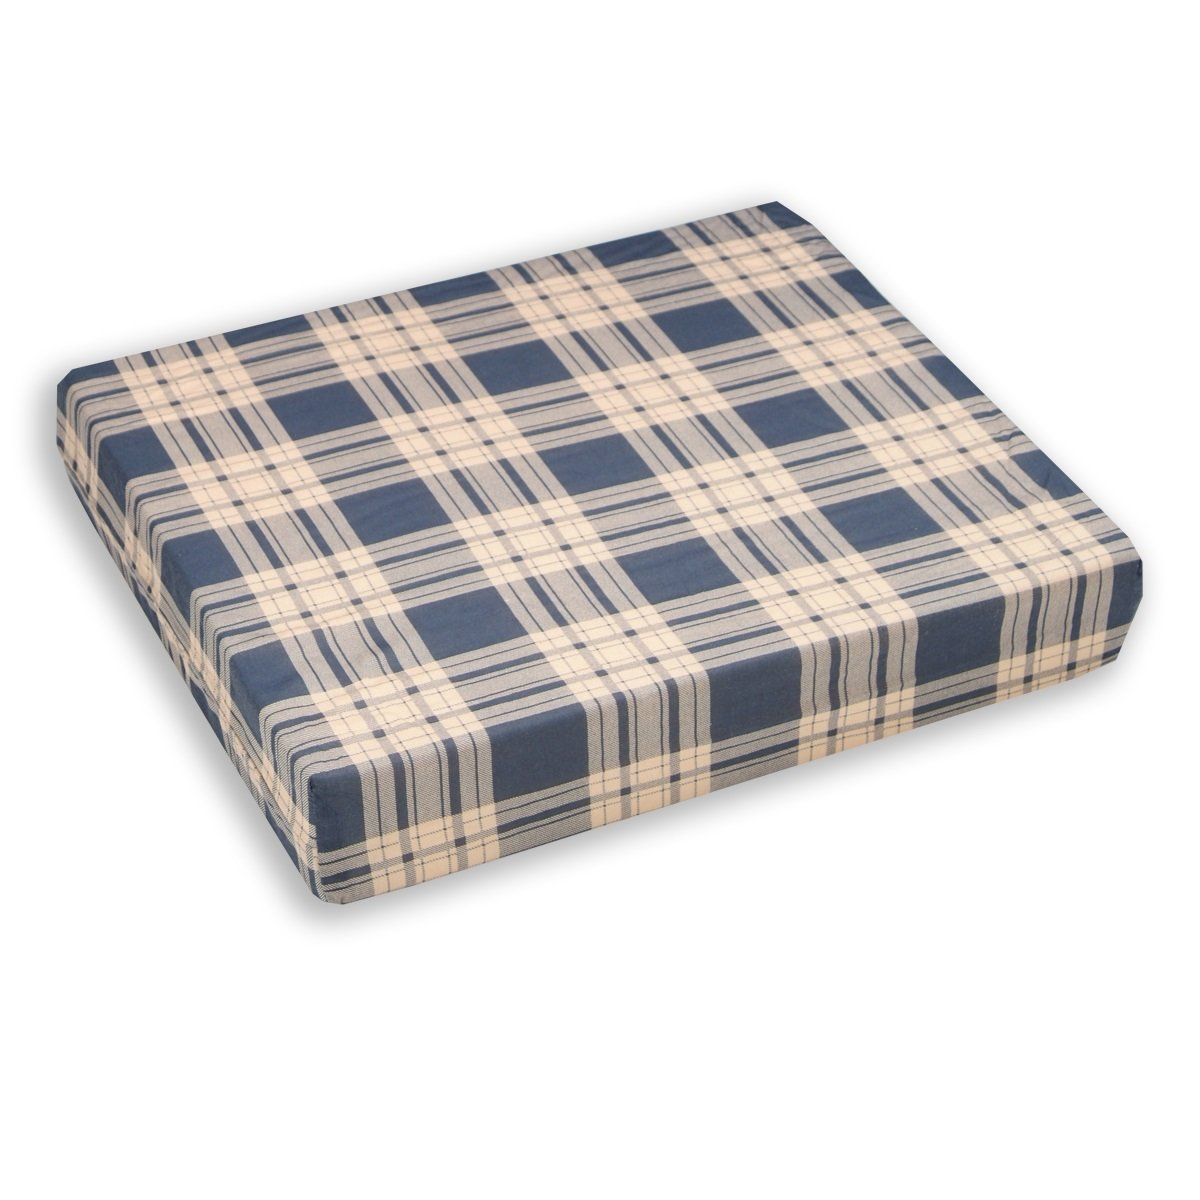 Egg Crate Foam Wheelchair Cushion, Plaid Cover - 4 Inch Thick - Helps Distribute Weight, Medical Grade Comfort, Reduce and Prevent Pressure Sores - By Hermell Products by Hermell Products Inc.